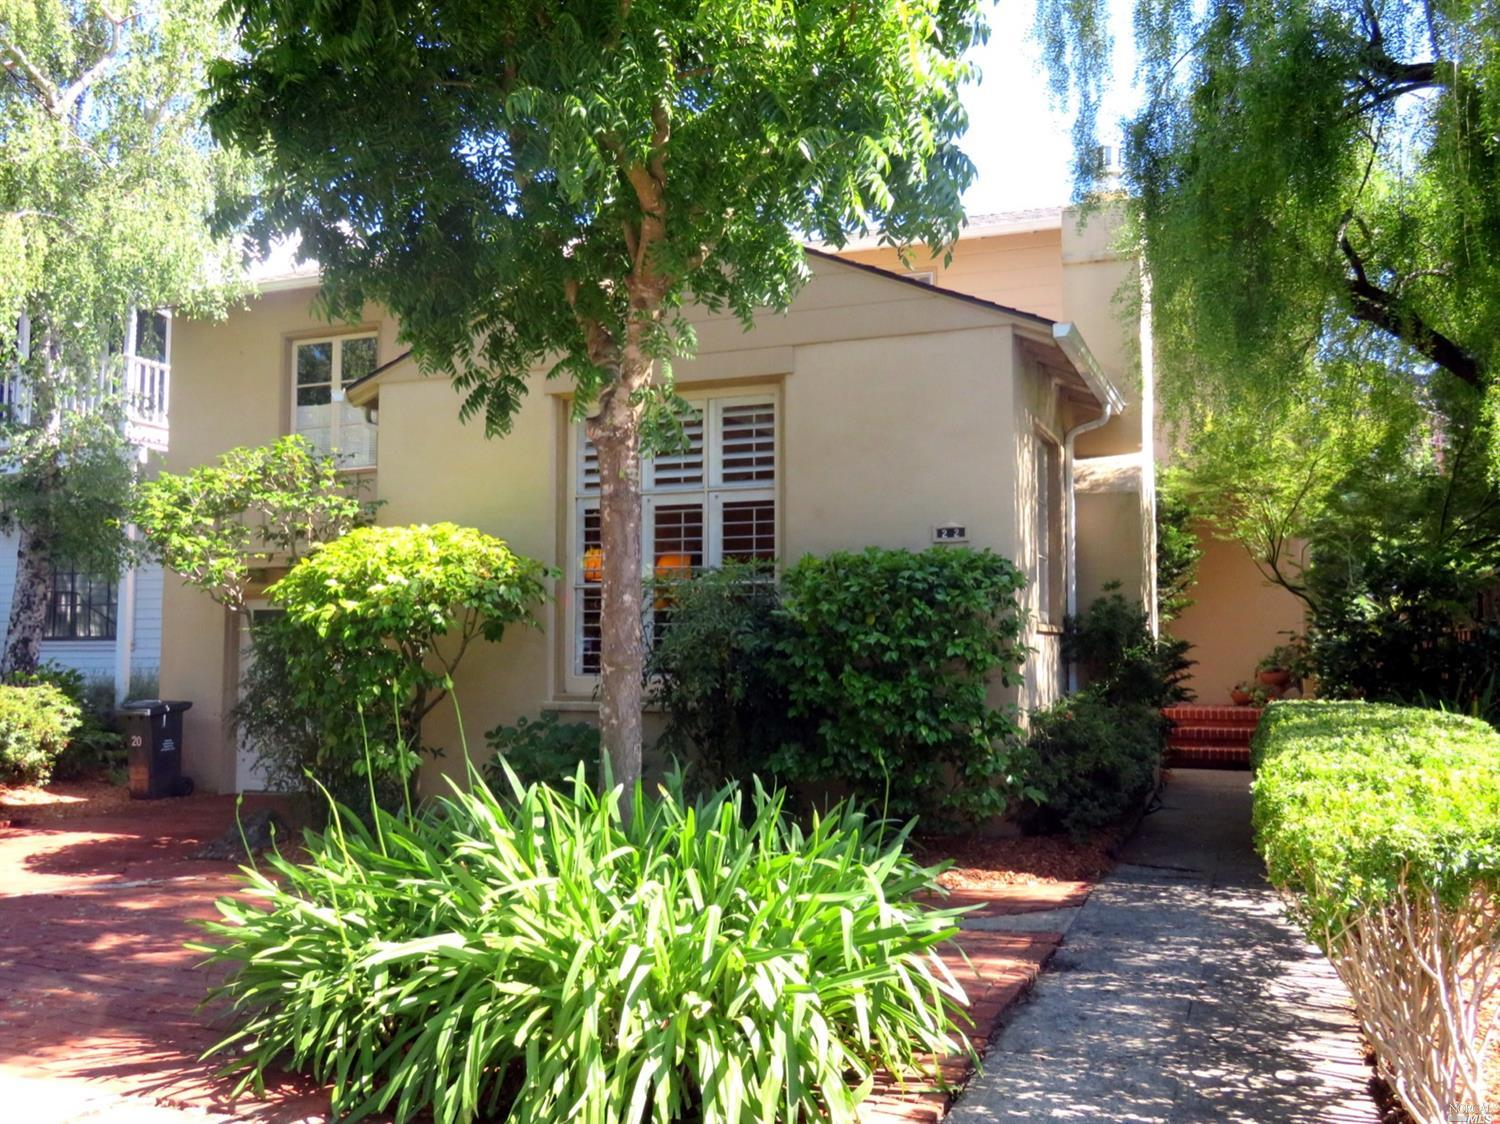 22 Agatha Court San Anselmo, California 94960, 4 Bedrooms Bedrooms, ,2 BathroomsBathrooms,Residential,For Sale,22 Agatha,21916089